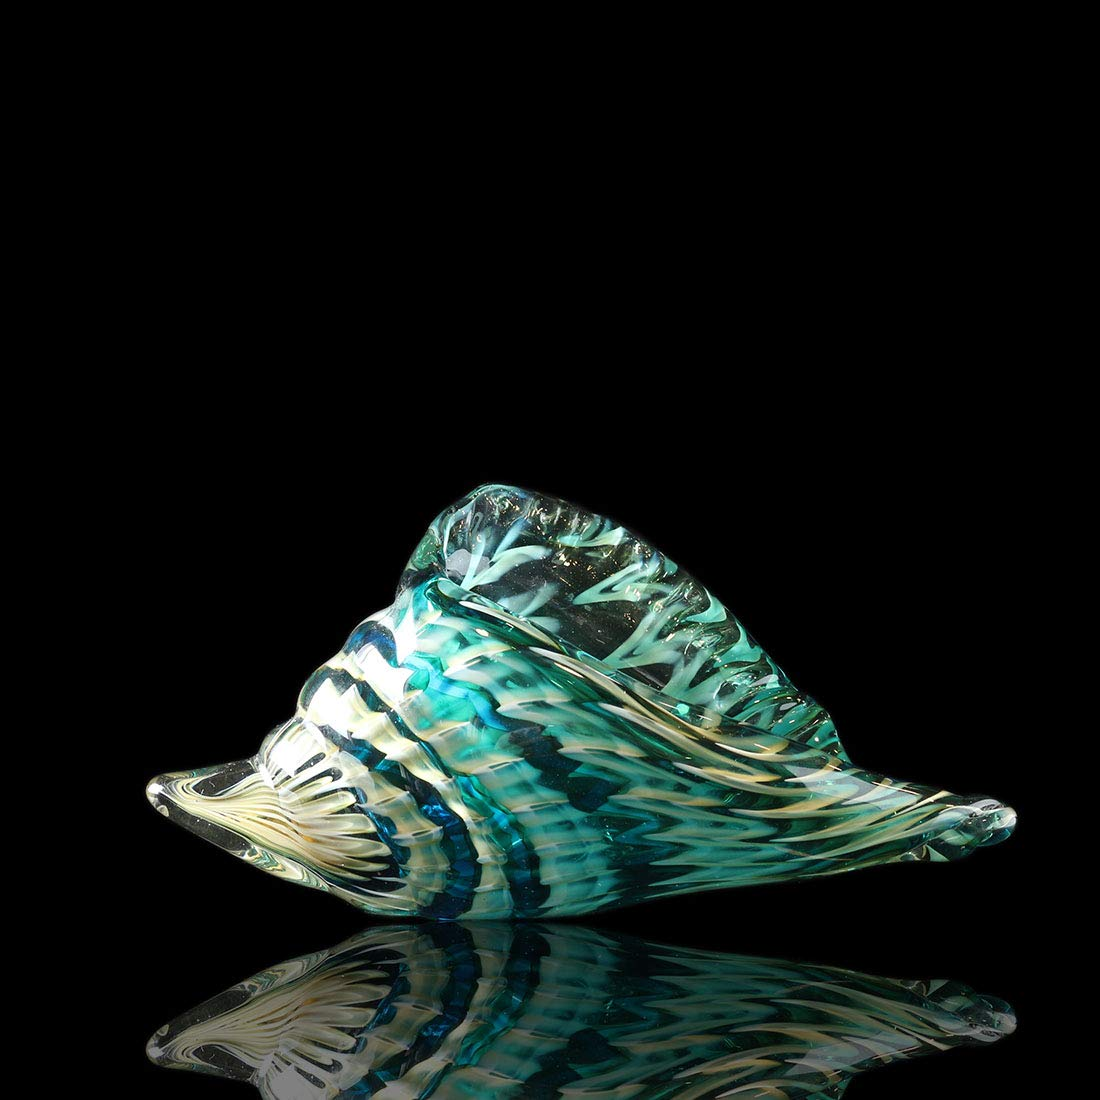 Qf Hand Blown Seashell, Beautiful Home Decor, Handmade Glass Art, Glass Conch by Qf